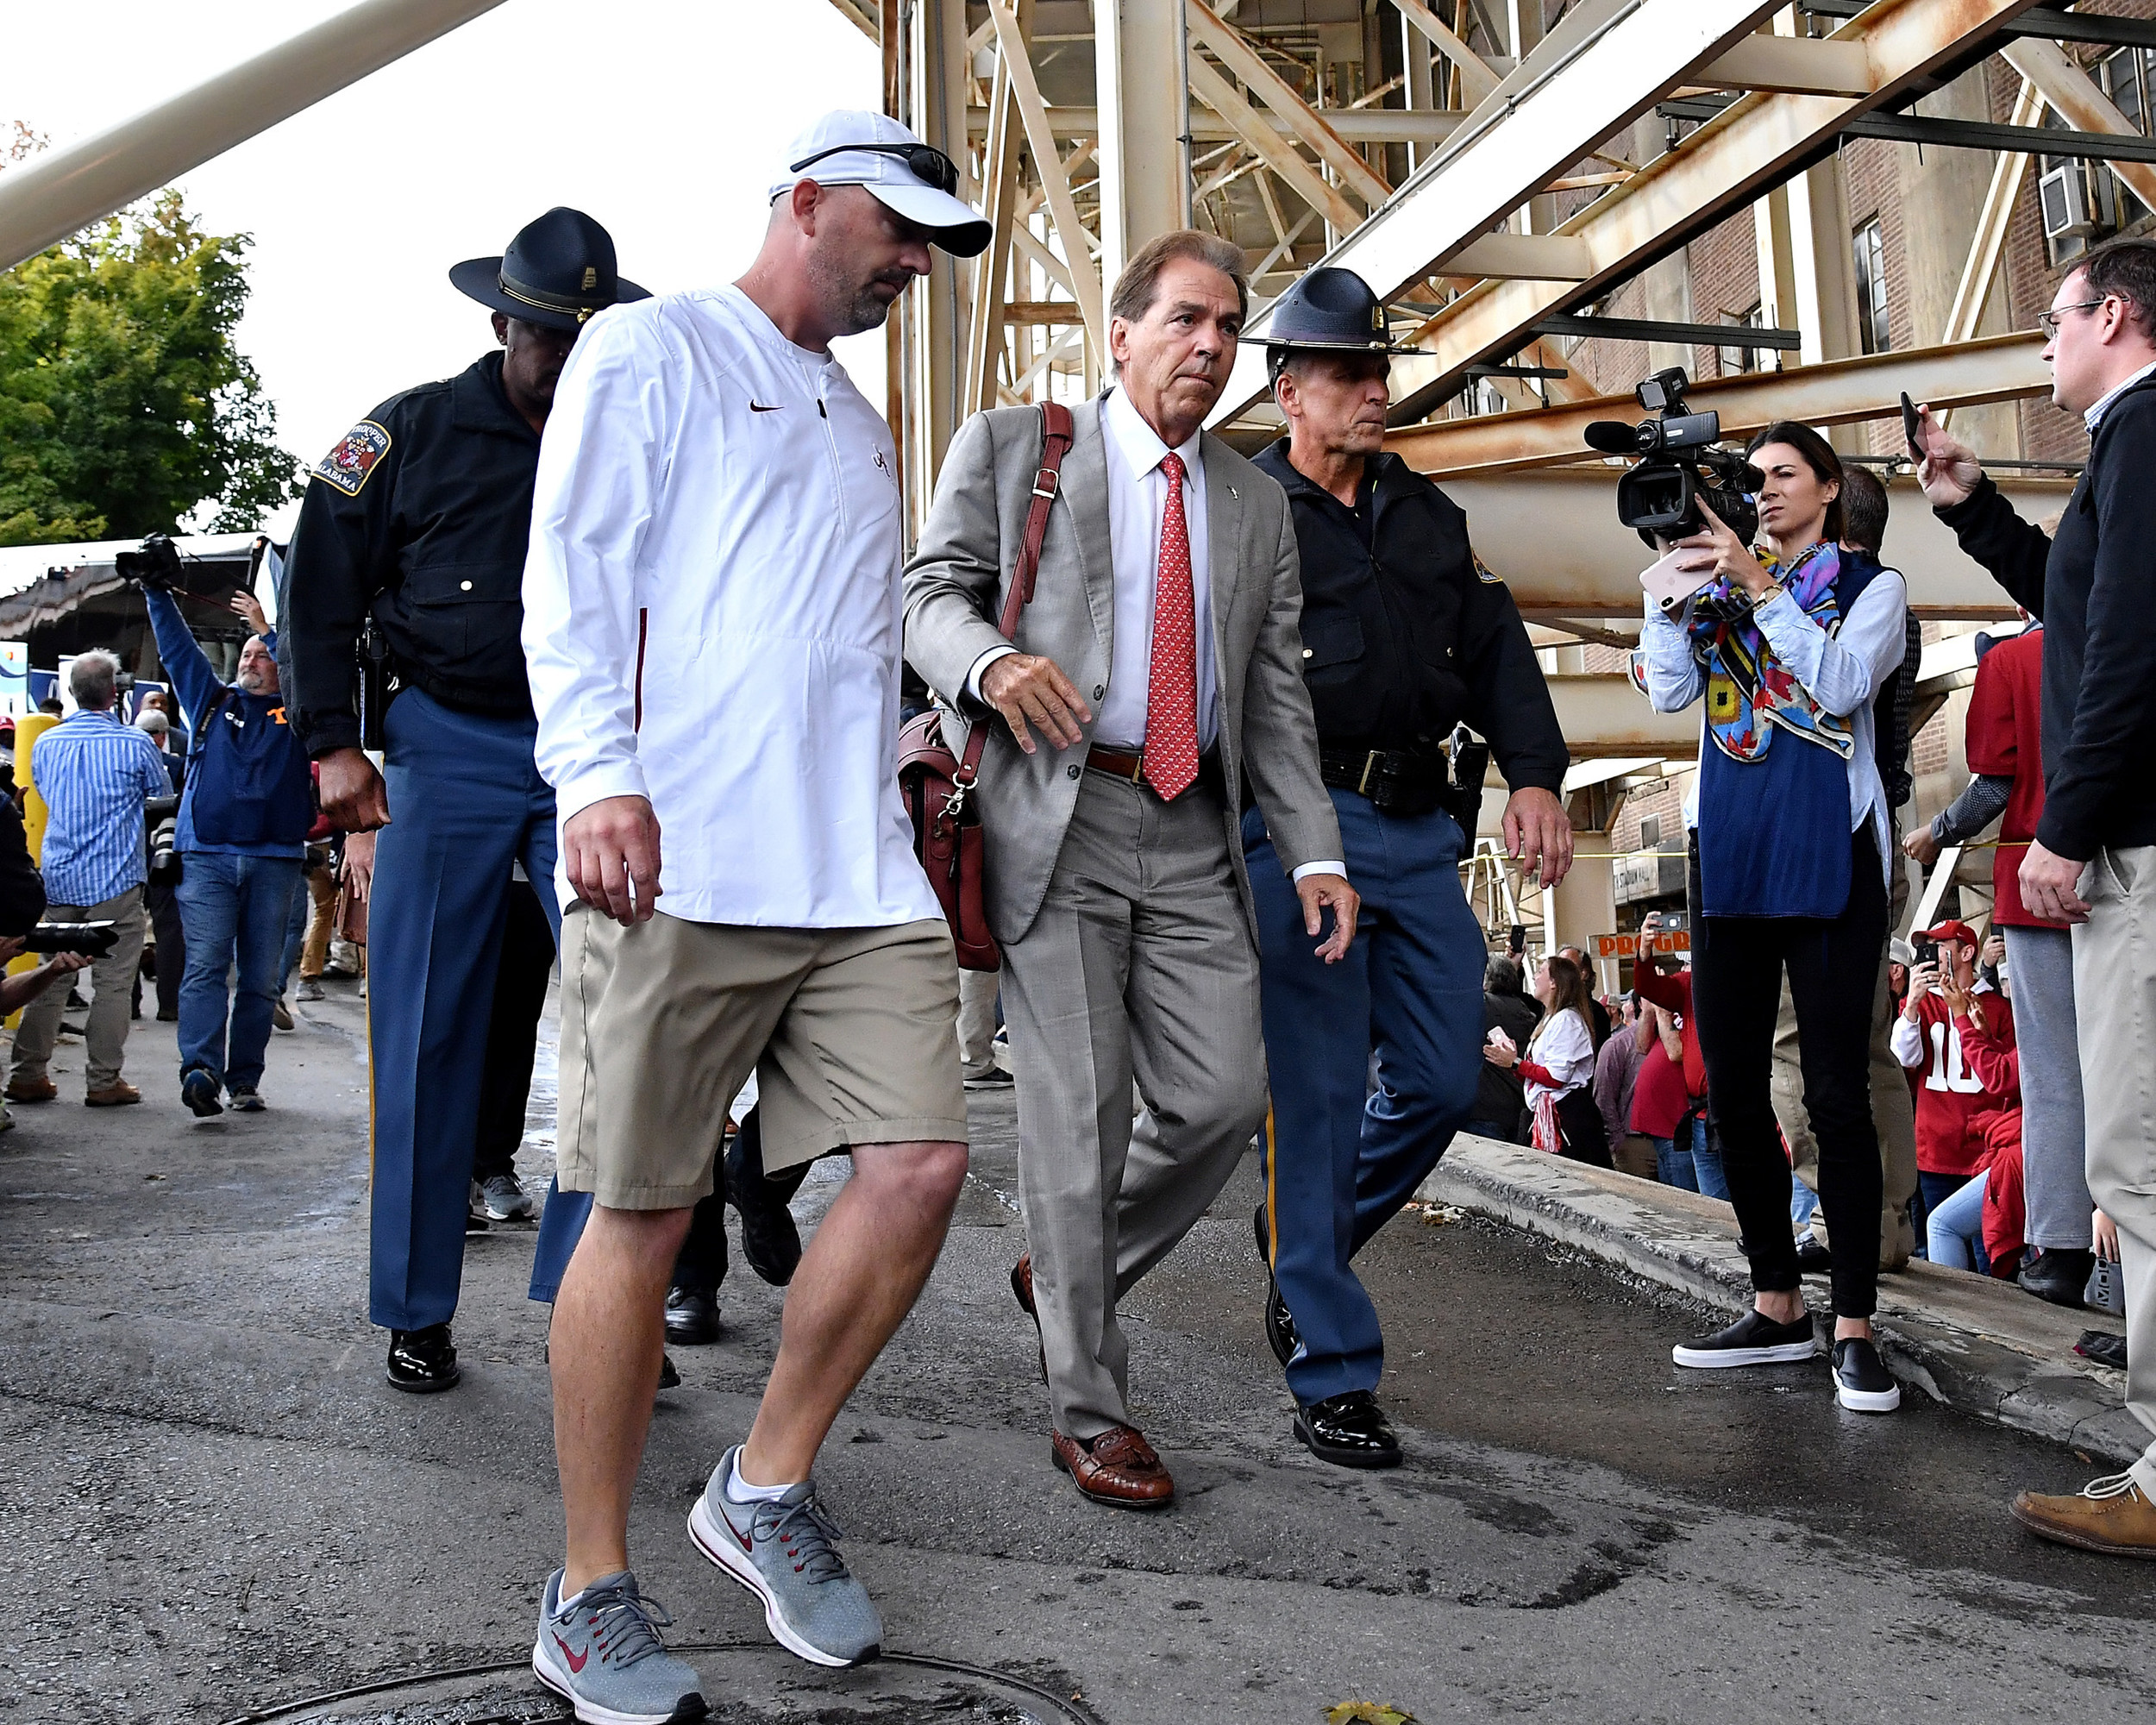 Alabama Crimson Tide head coach Nick Saban enters Neyland Stadium prior to the Alabama at Tennessee NCAA football game on Saturday, Oct. 20, 2018, in Knoxville. Tenn. Alabama wins 58-21. (Photo by Lee Walls)